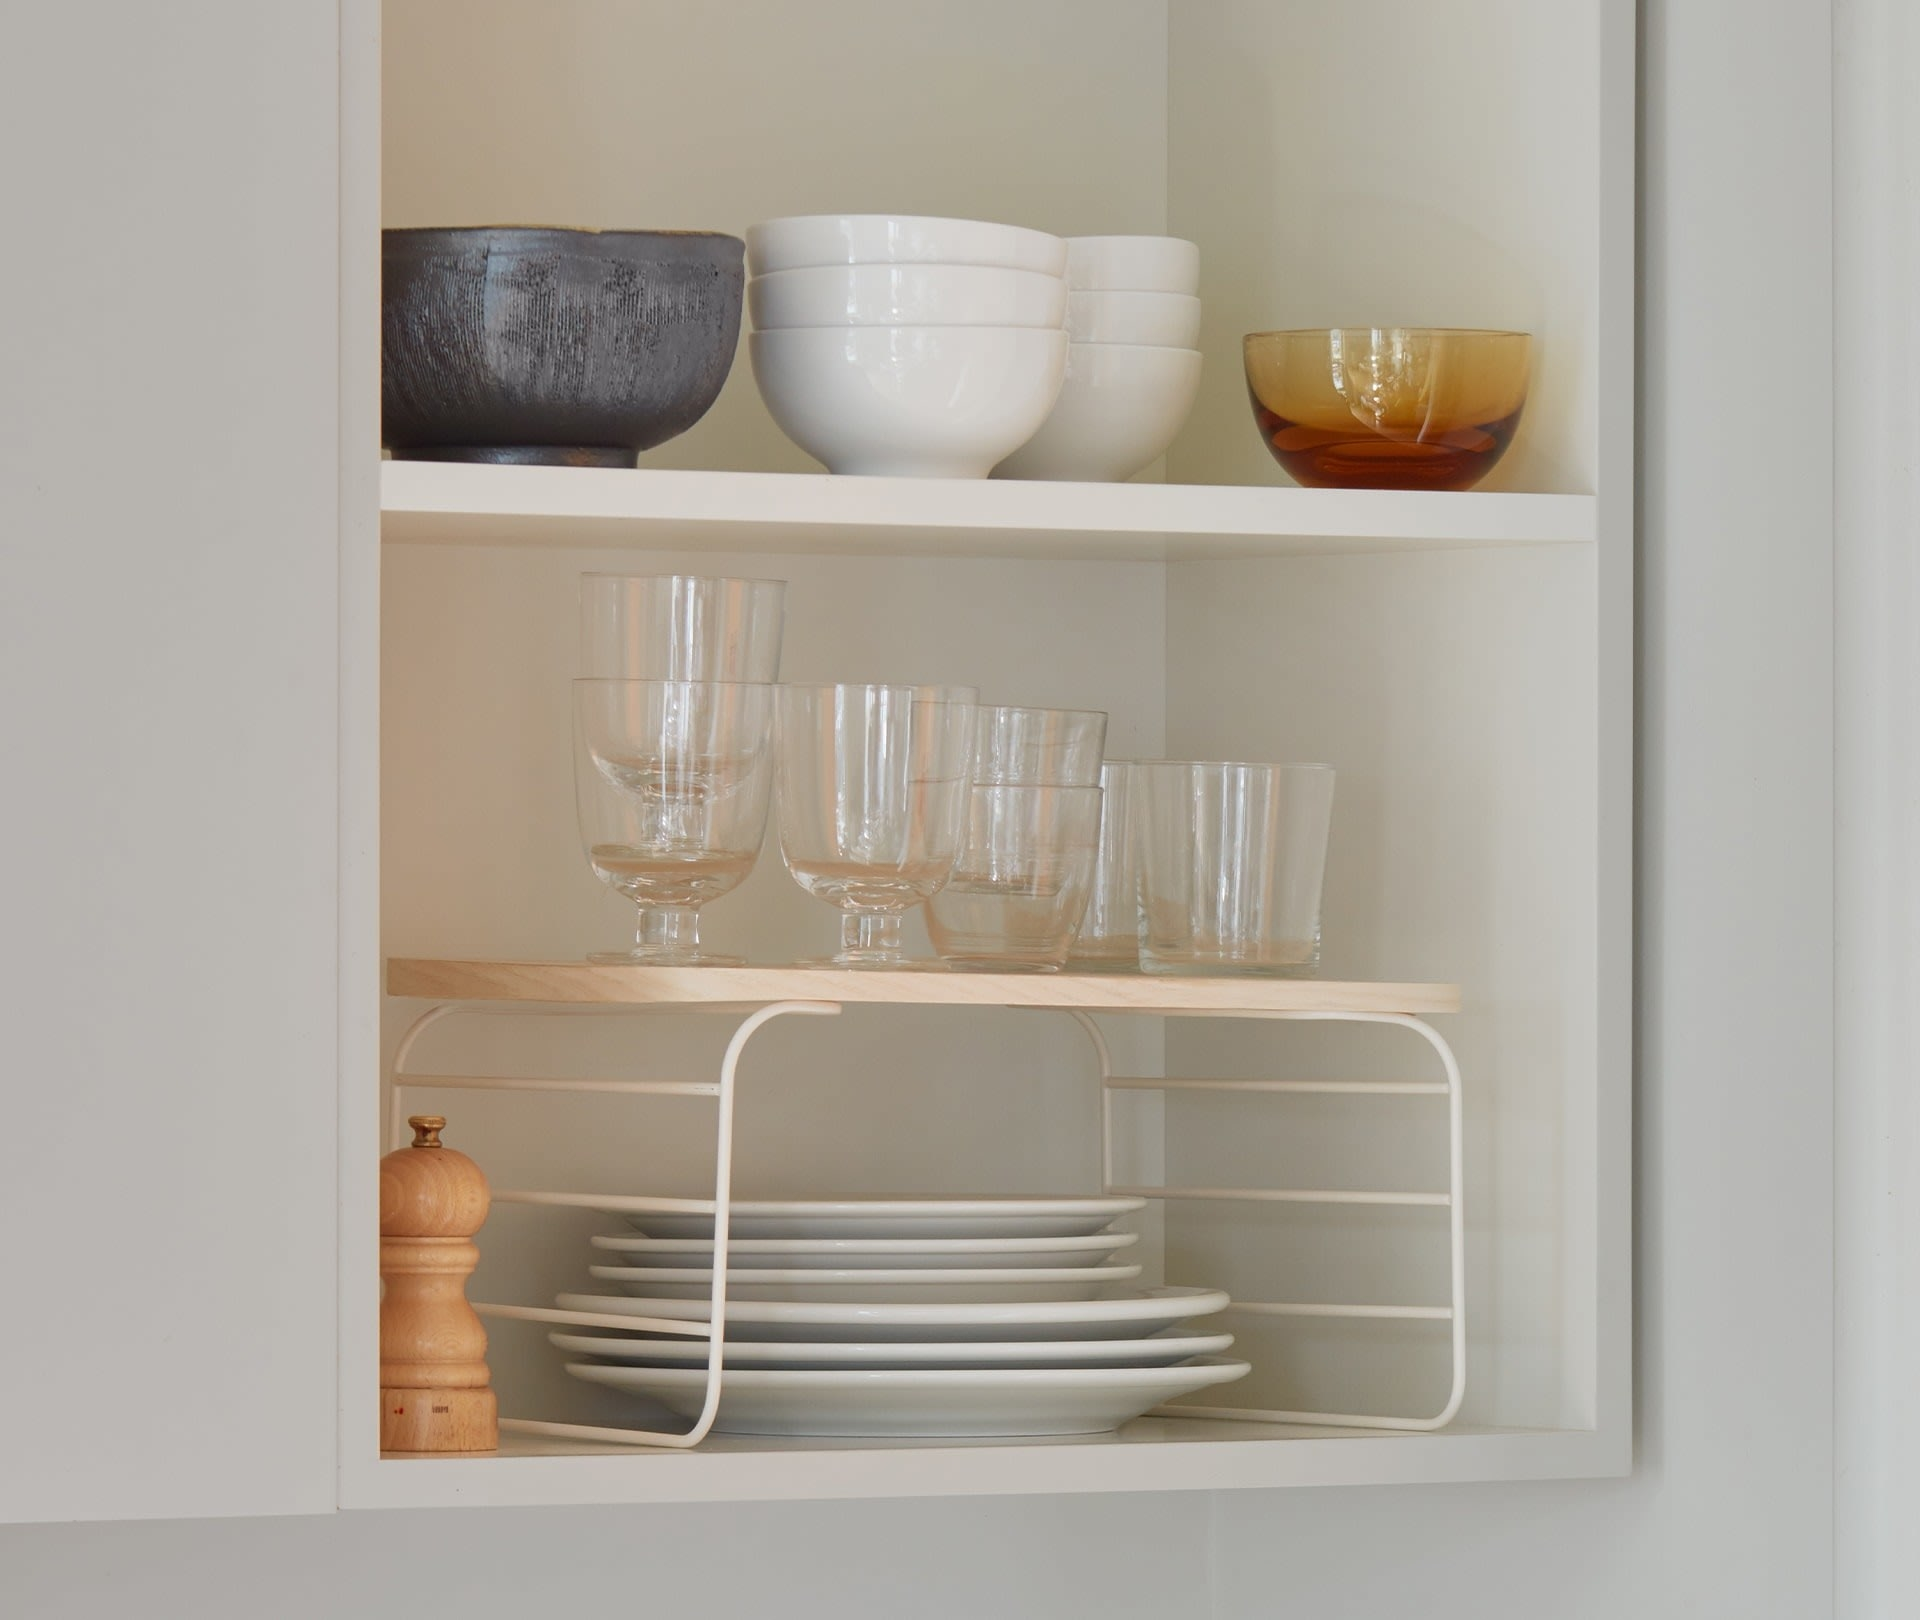 One shelf rises in a cabinet with plates underneath and glasses on top